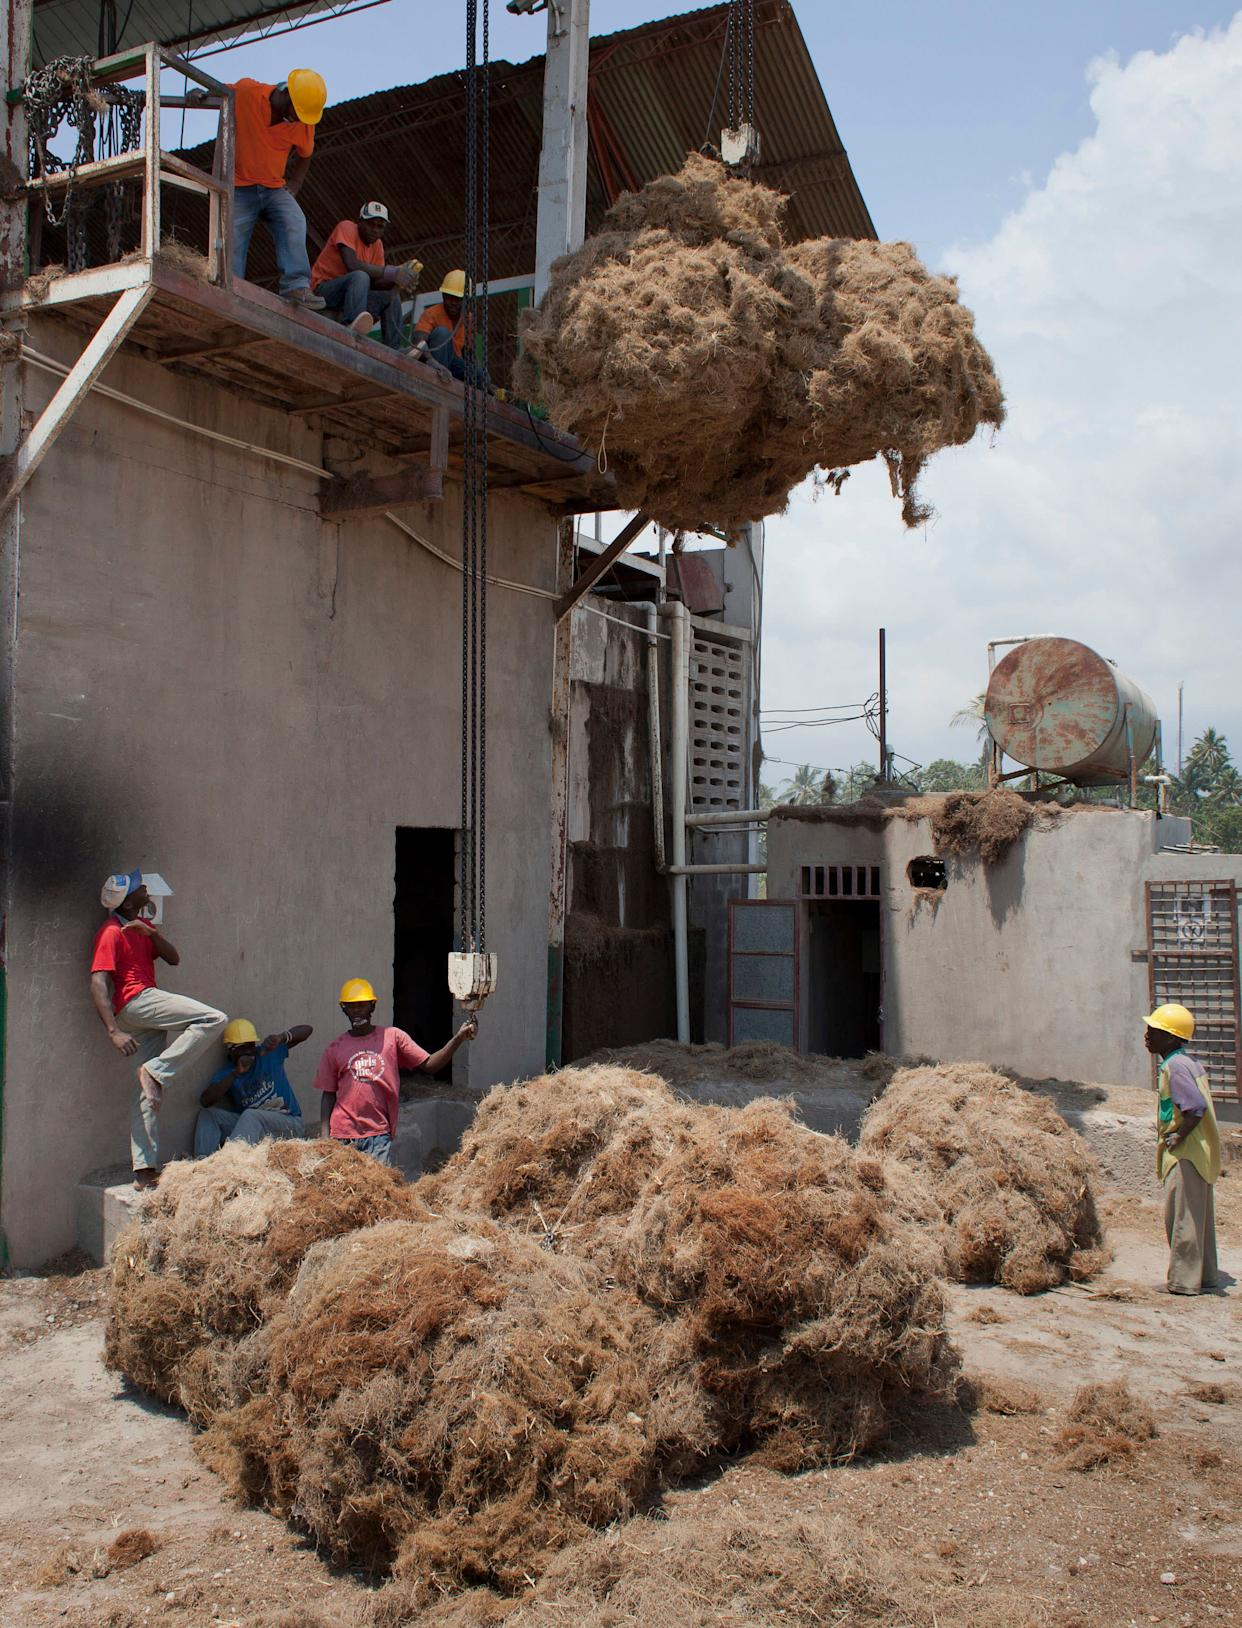 Workers move bales of Vetiver roots to be processed at the Agri-supply distillery on Haiti's southwest coast on March 27, 2014.